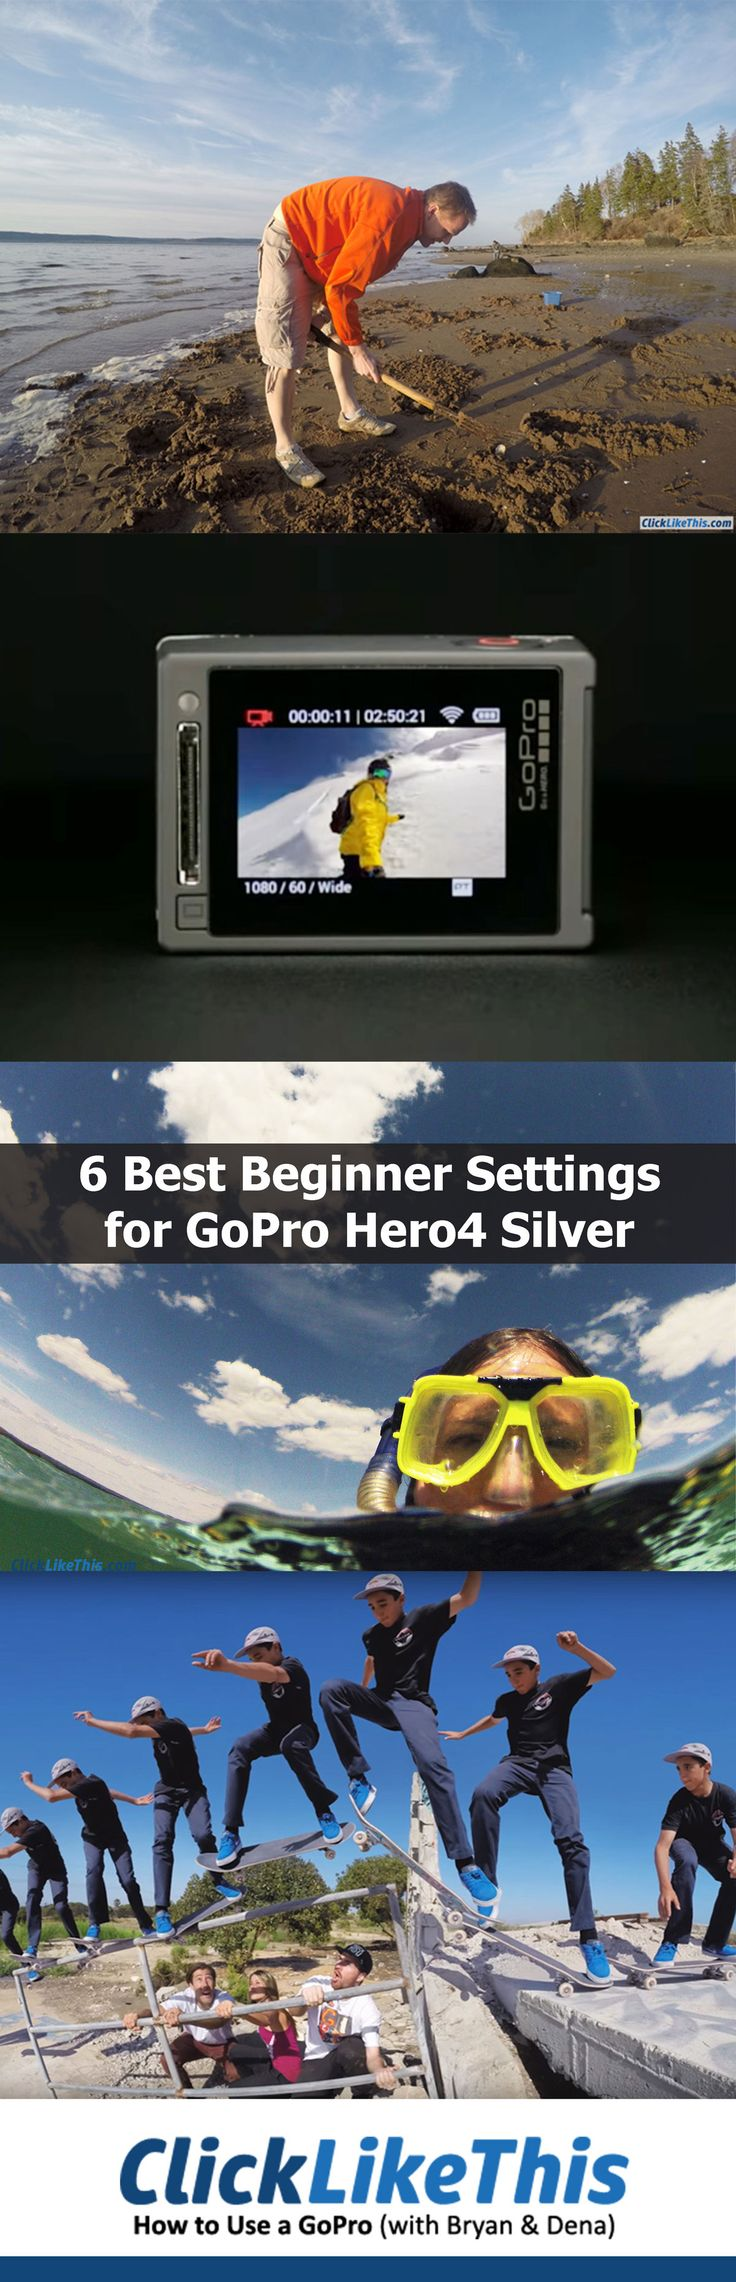 6 Best GoPro Hero4 Silver Settings for Beginners [Video]